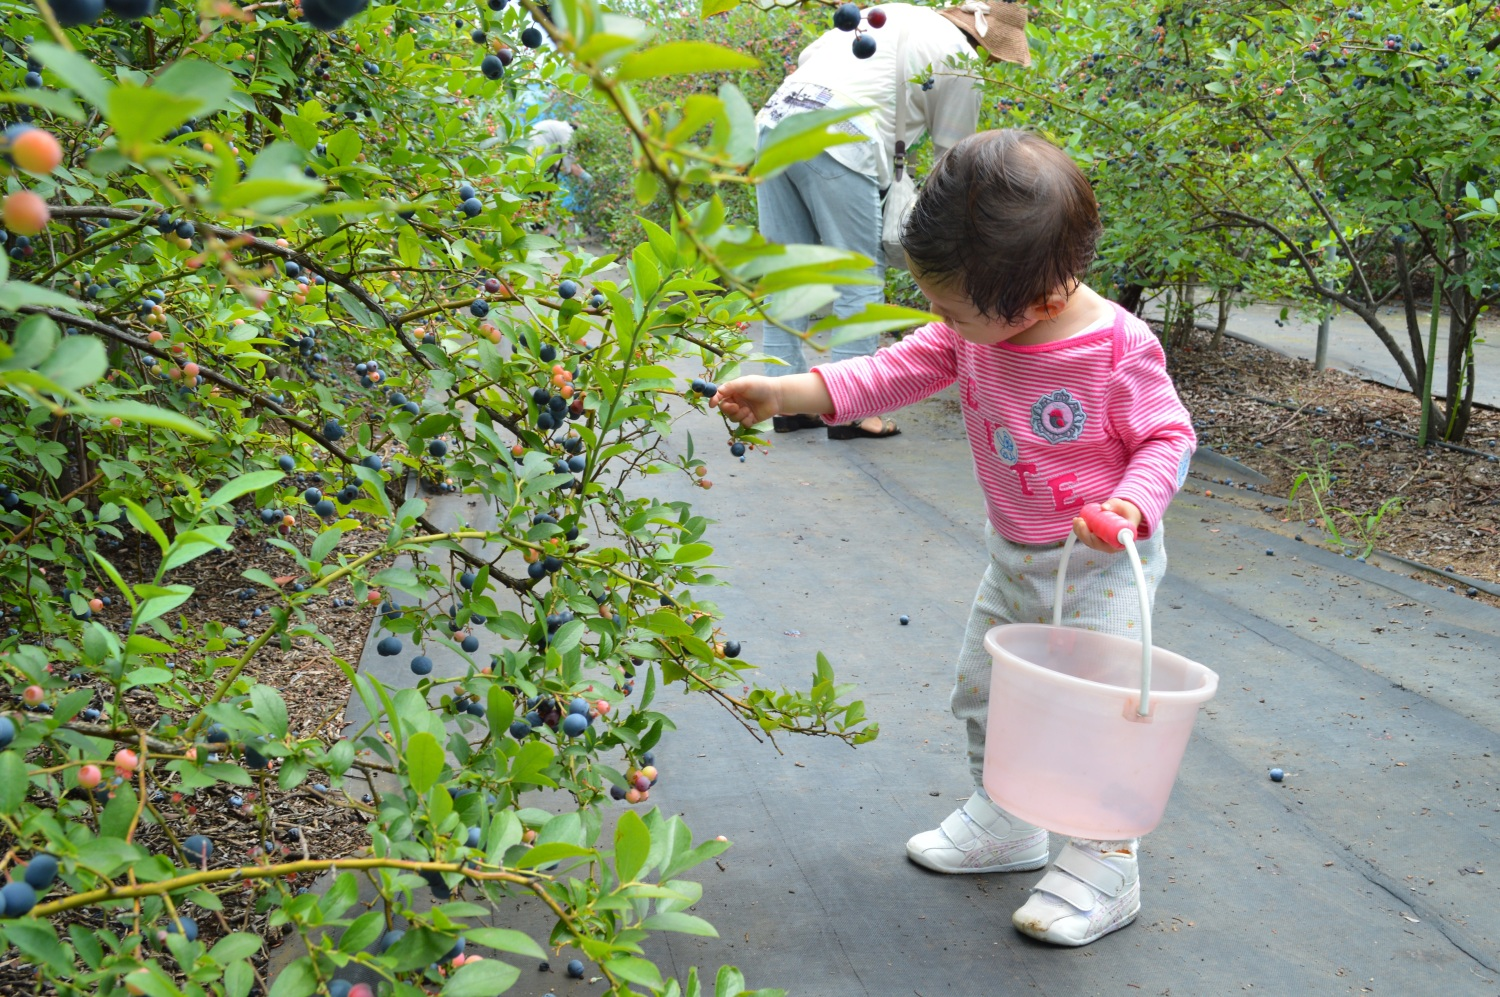 Among adults, it is earnest? Of blueberry pick; image